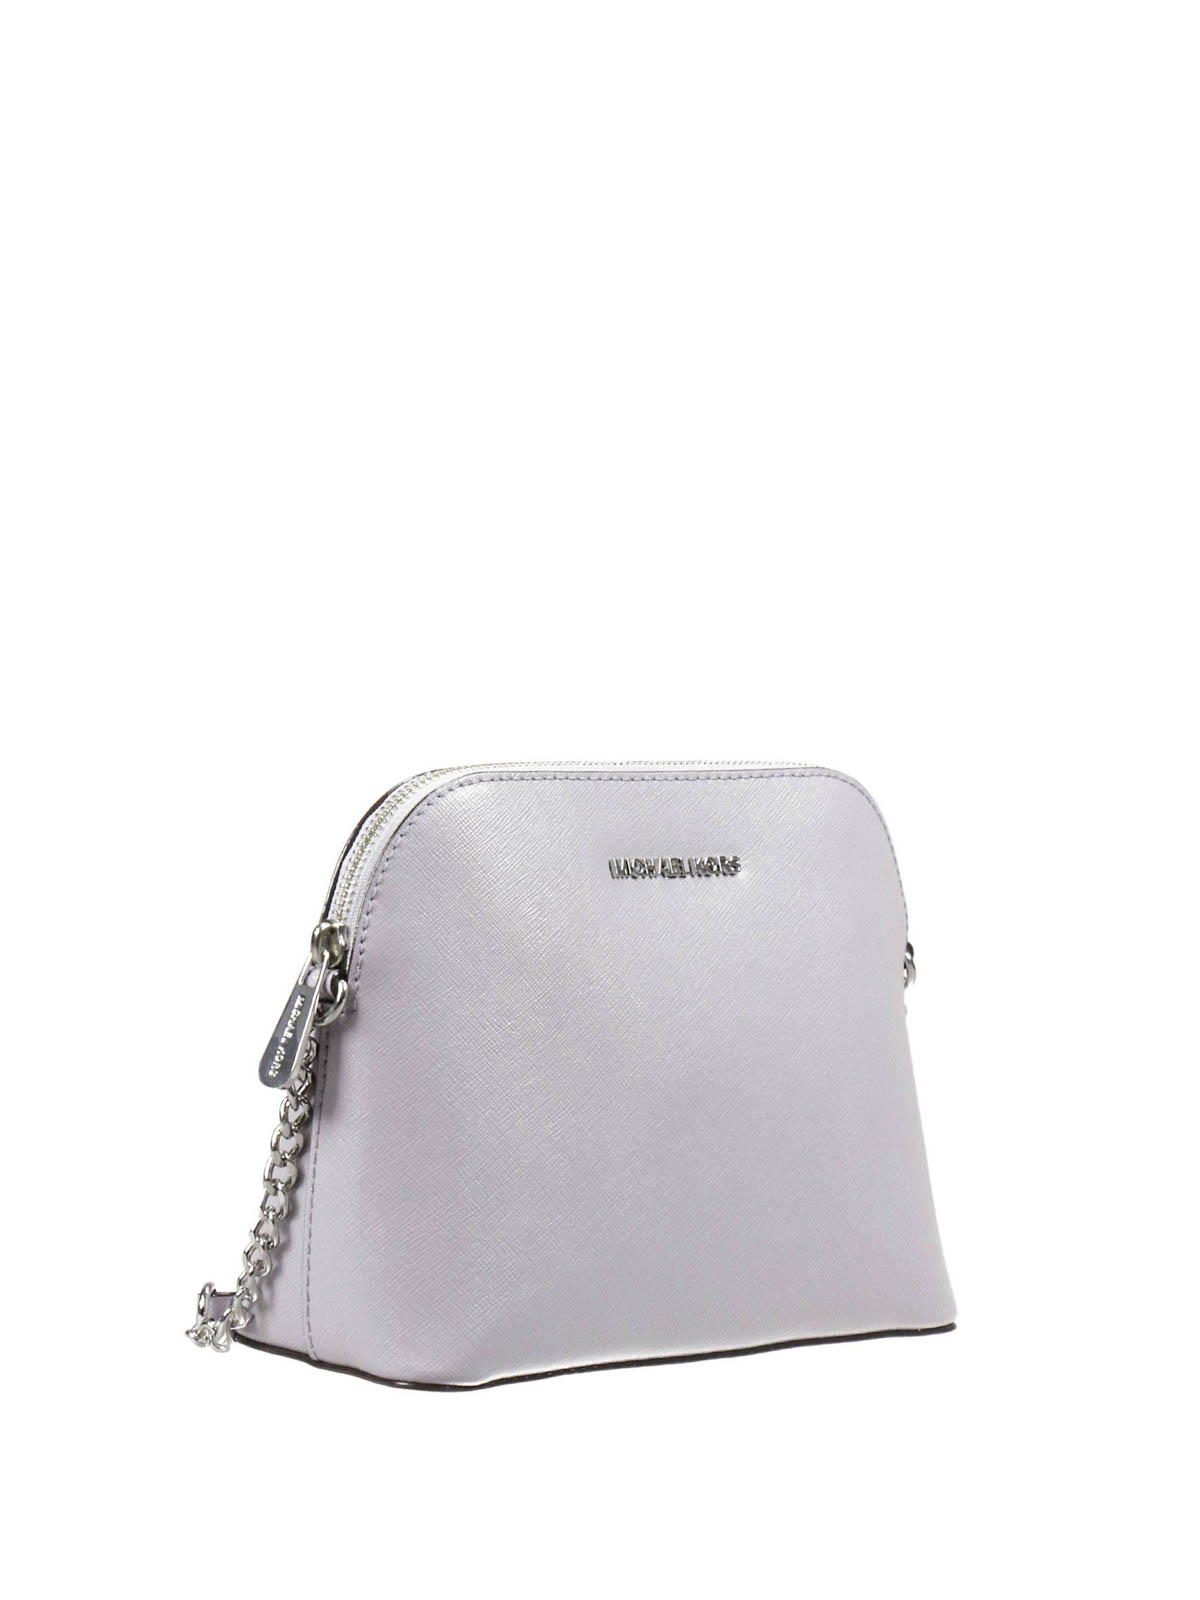 d416c705cc9966 MICHAEL KORS: cross body bags online - Cindy metallic Saffiano crossbody